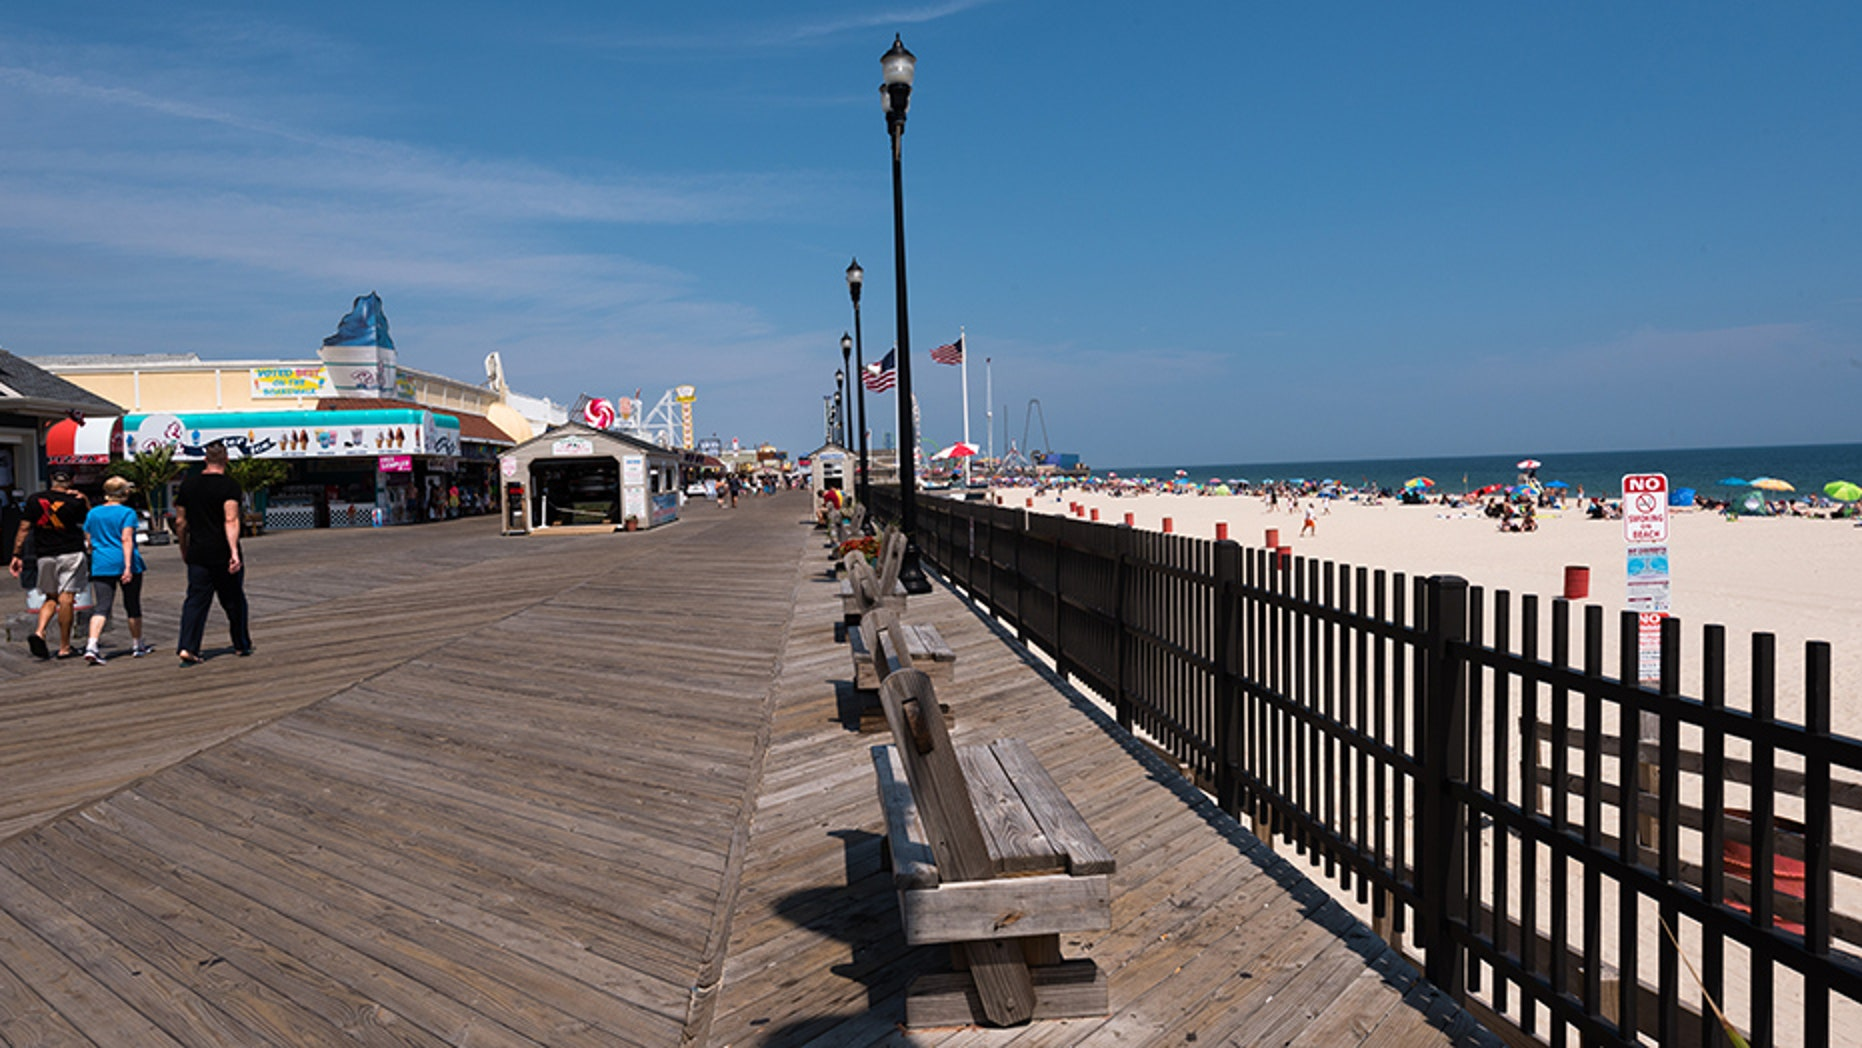 An estimated 15,000 revelers showed up on the boardwalk and beachfront of Seaside Heights, New Jersey as a result of the social media post about a party.